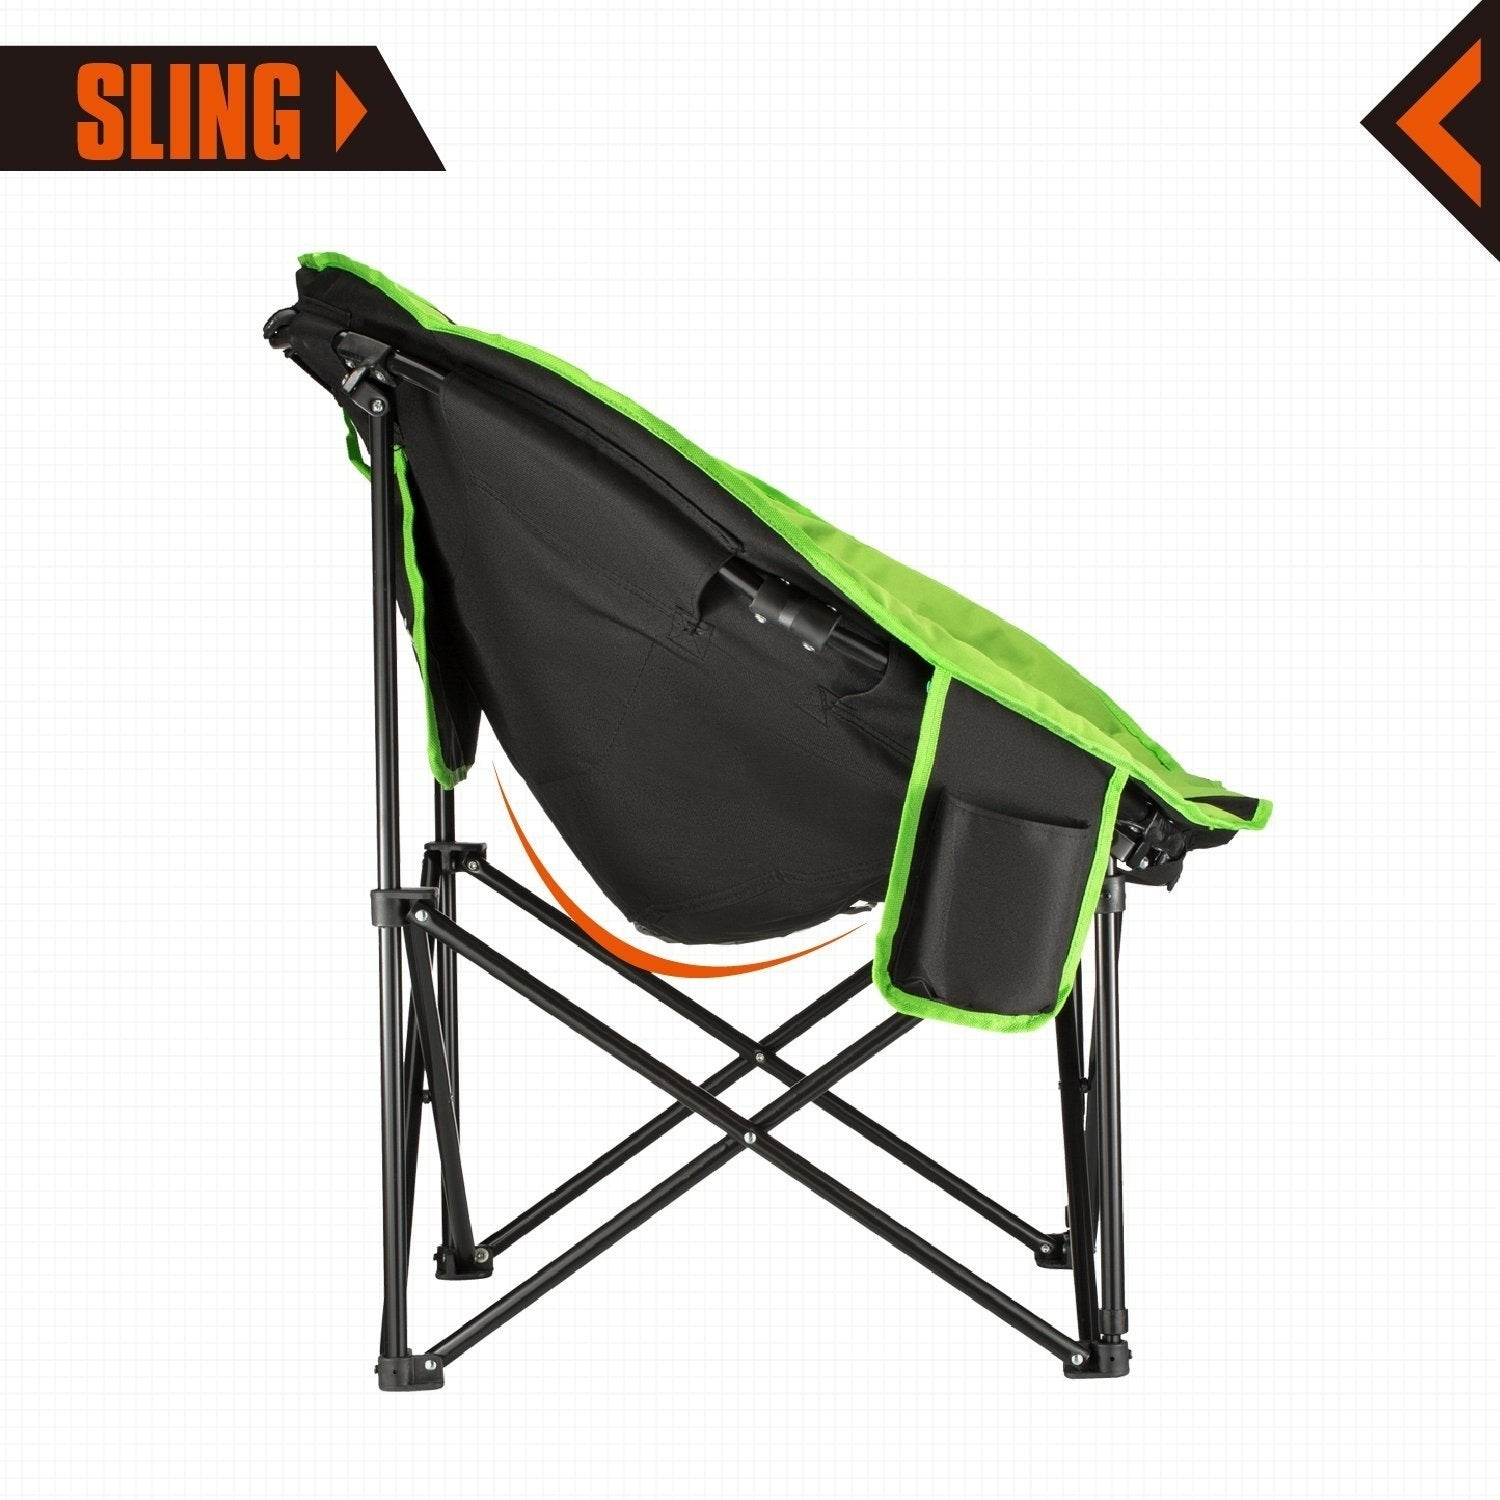 Kingcamp moon saucer camping chair steel frame folding padded kingcamp moon saucer camping chair steel frame folding padded round portable stable with carry bag free shipping today overstock 26493467 jeuxipadfo Choice Image